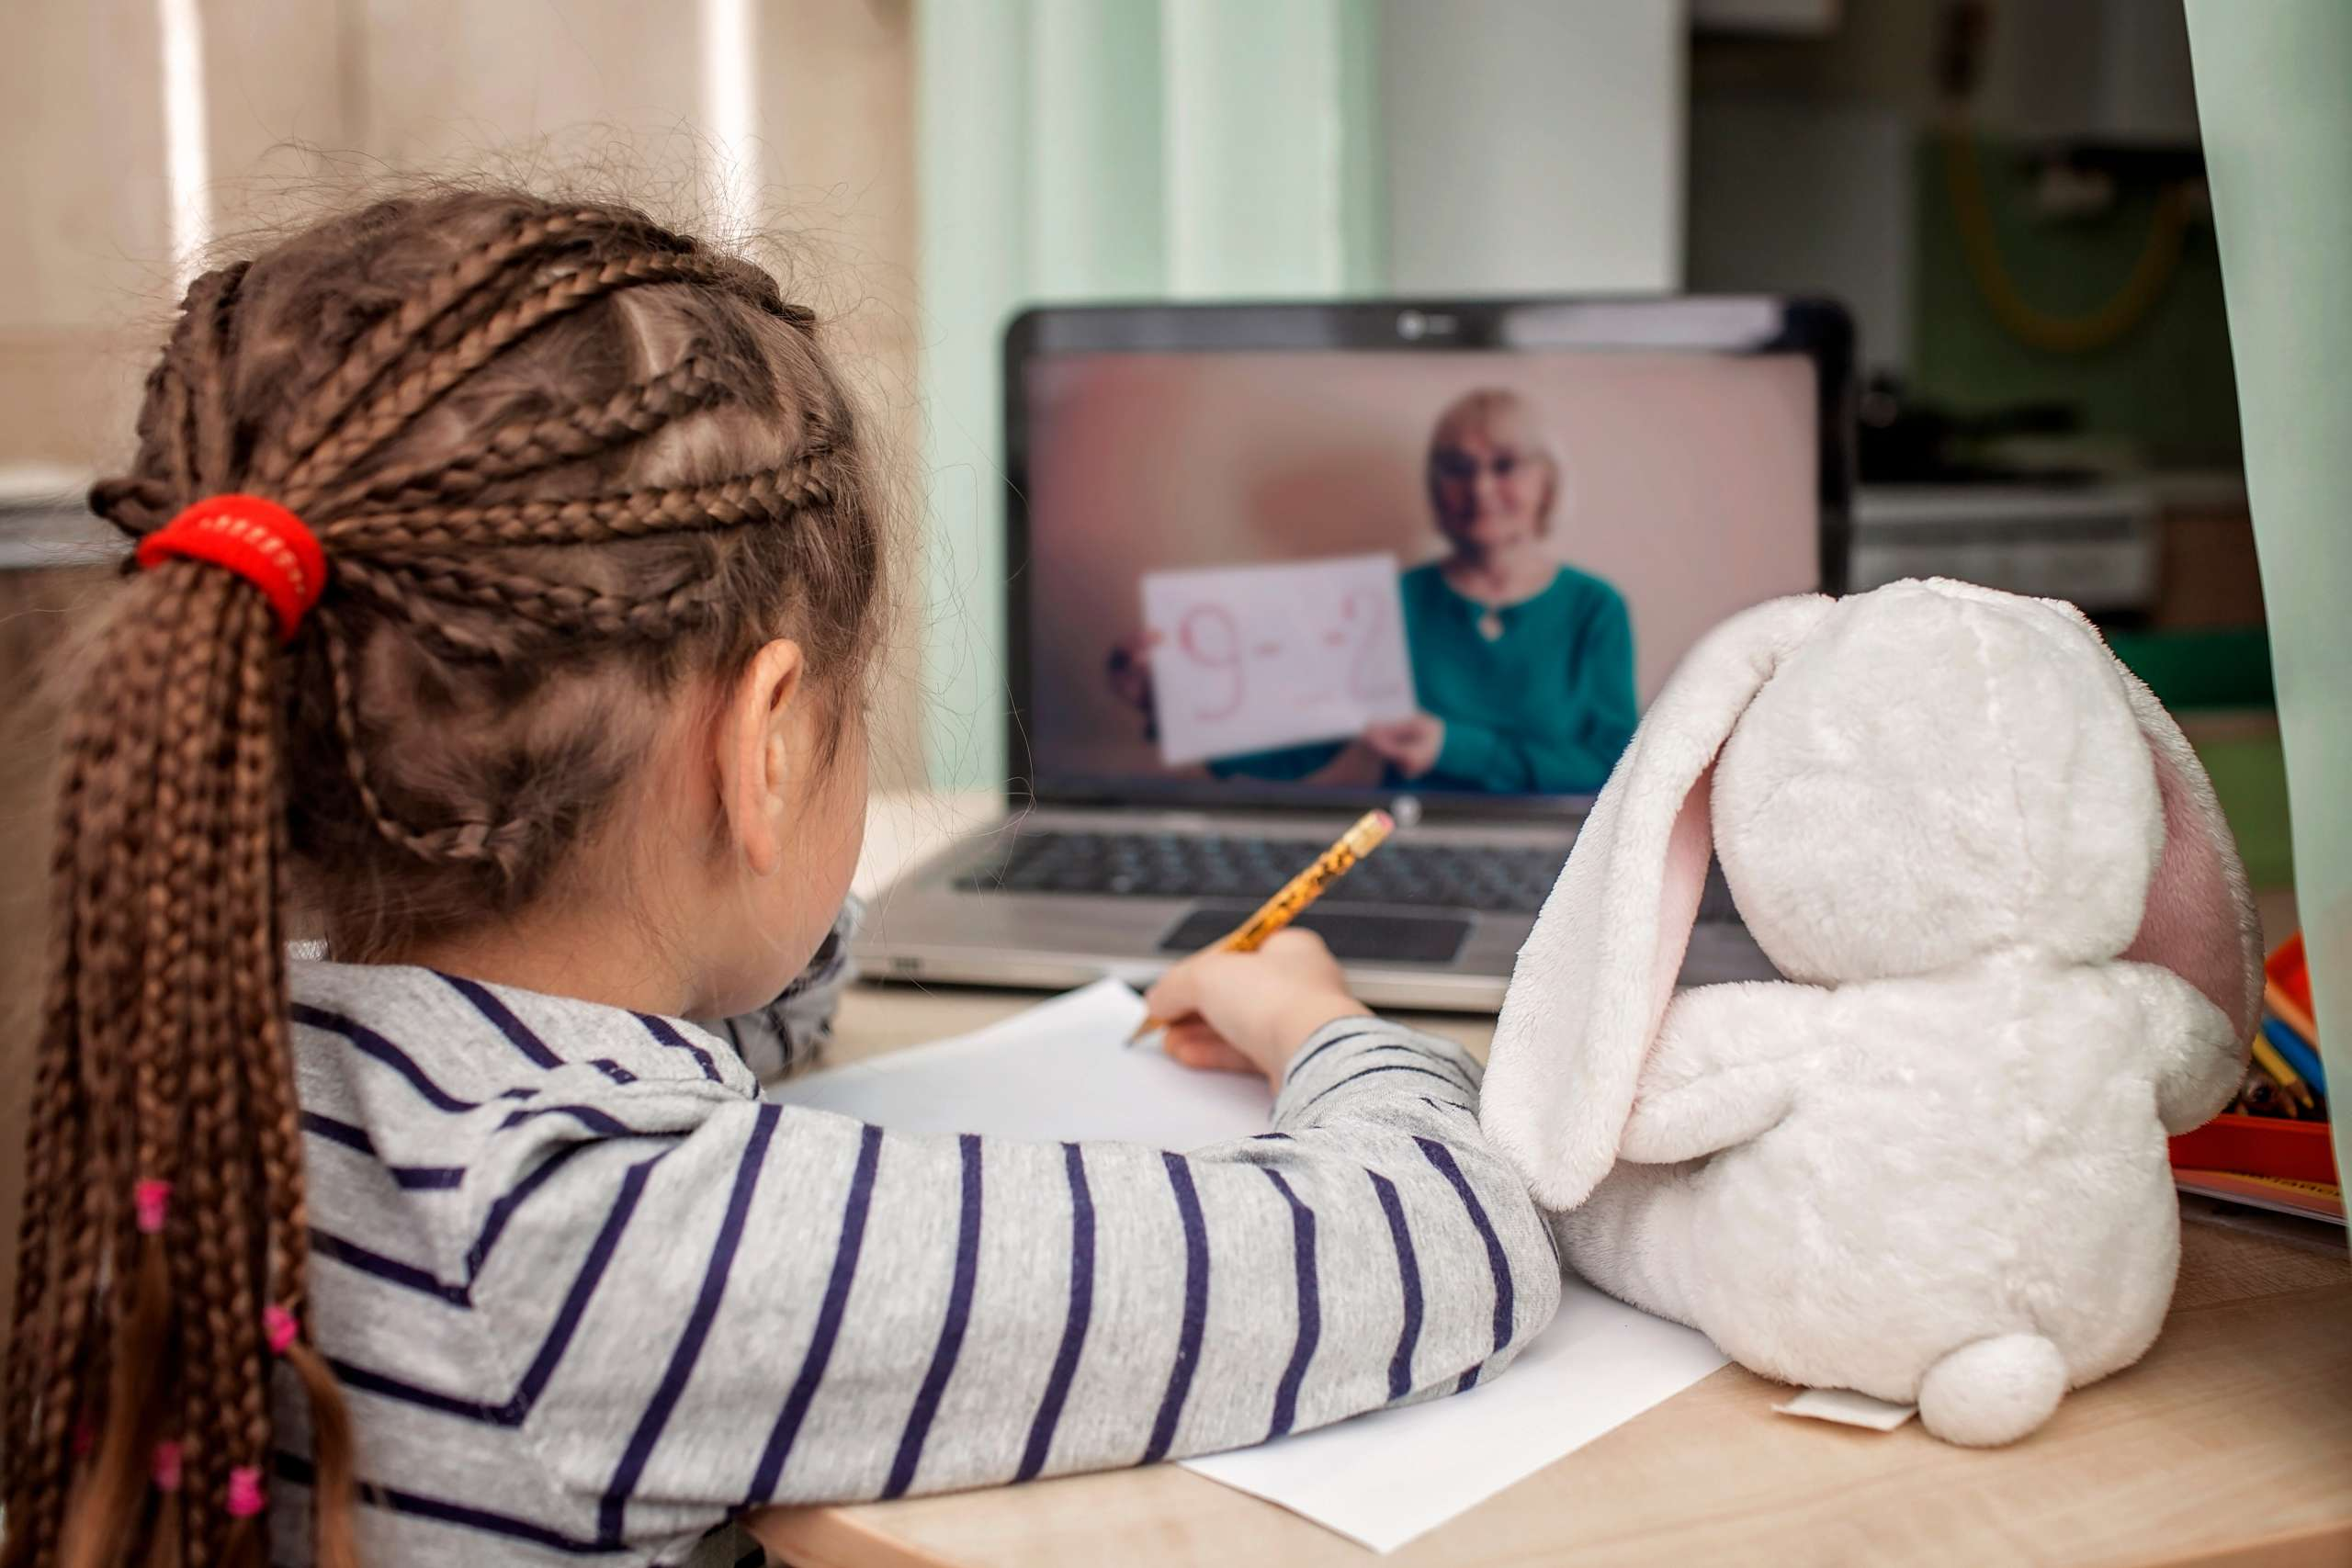 Teaching English Online to a young girl via Skype